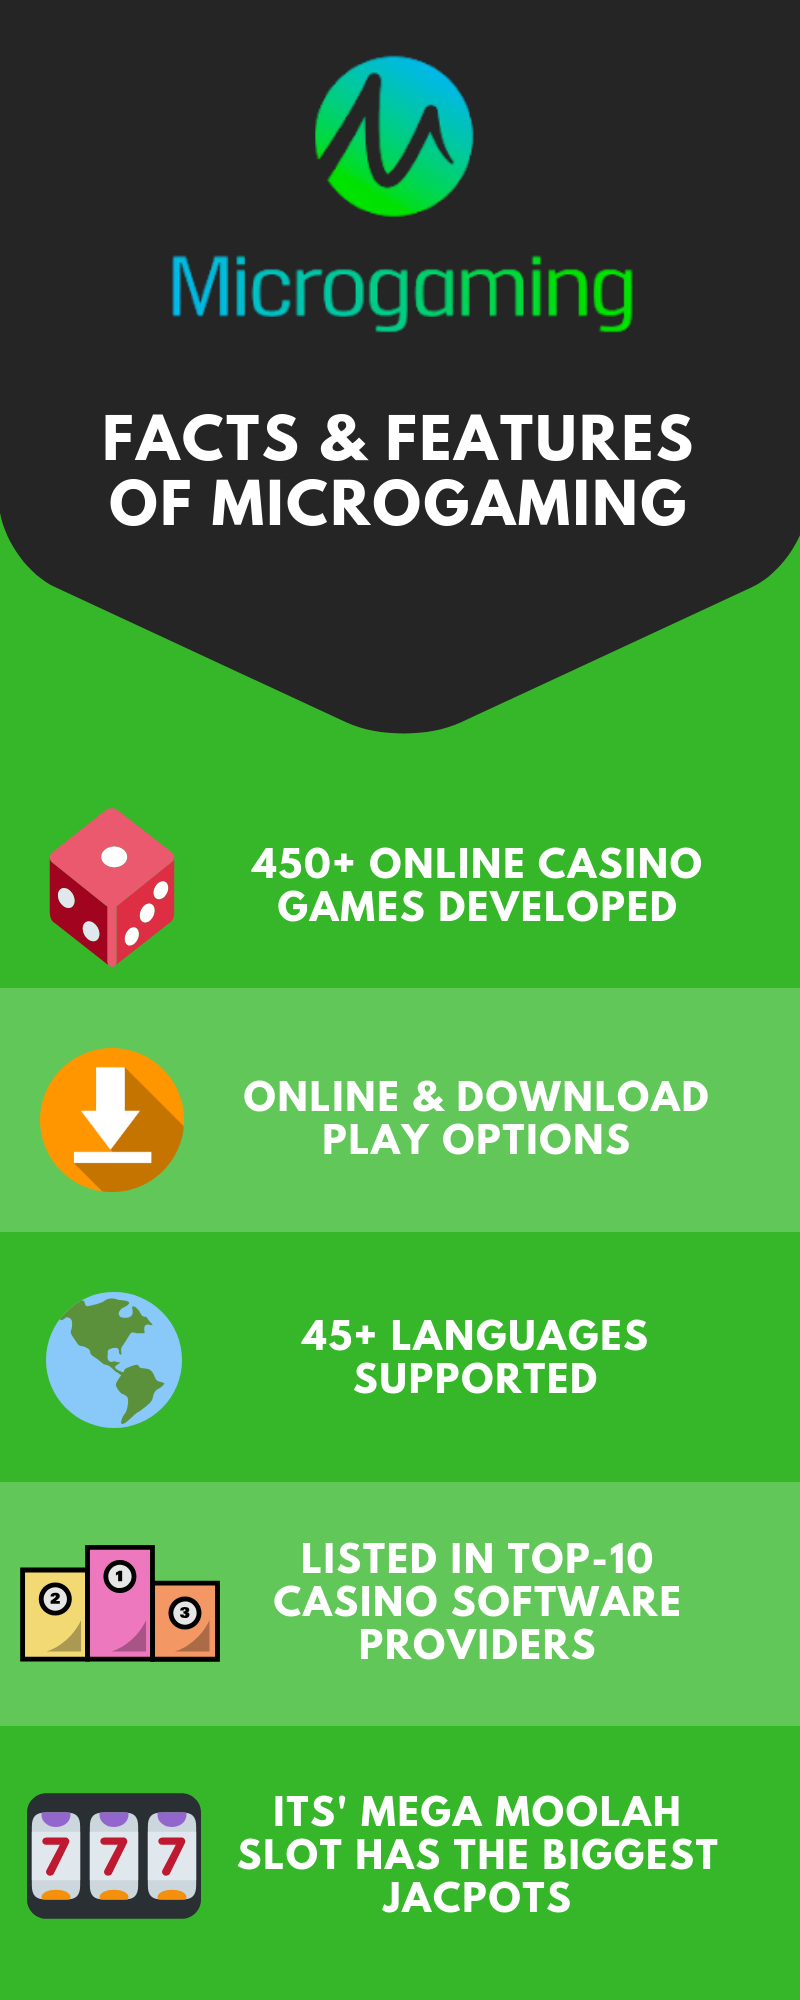 Microgaming Software Gaming Company [Infographic]